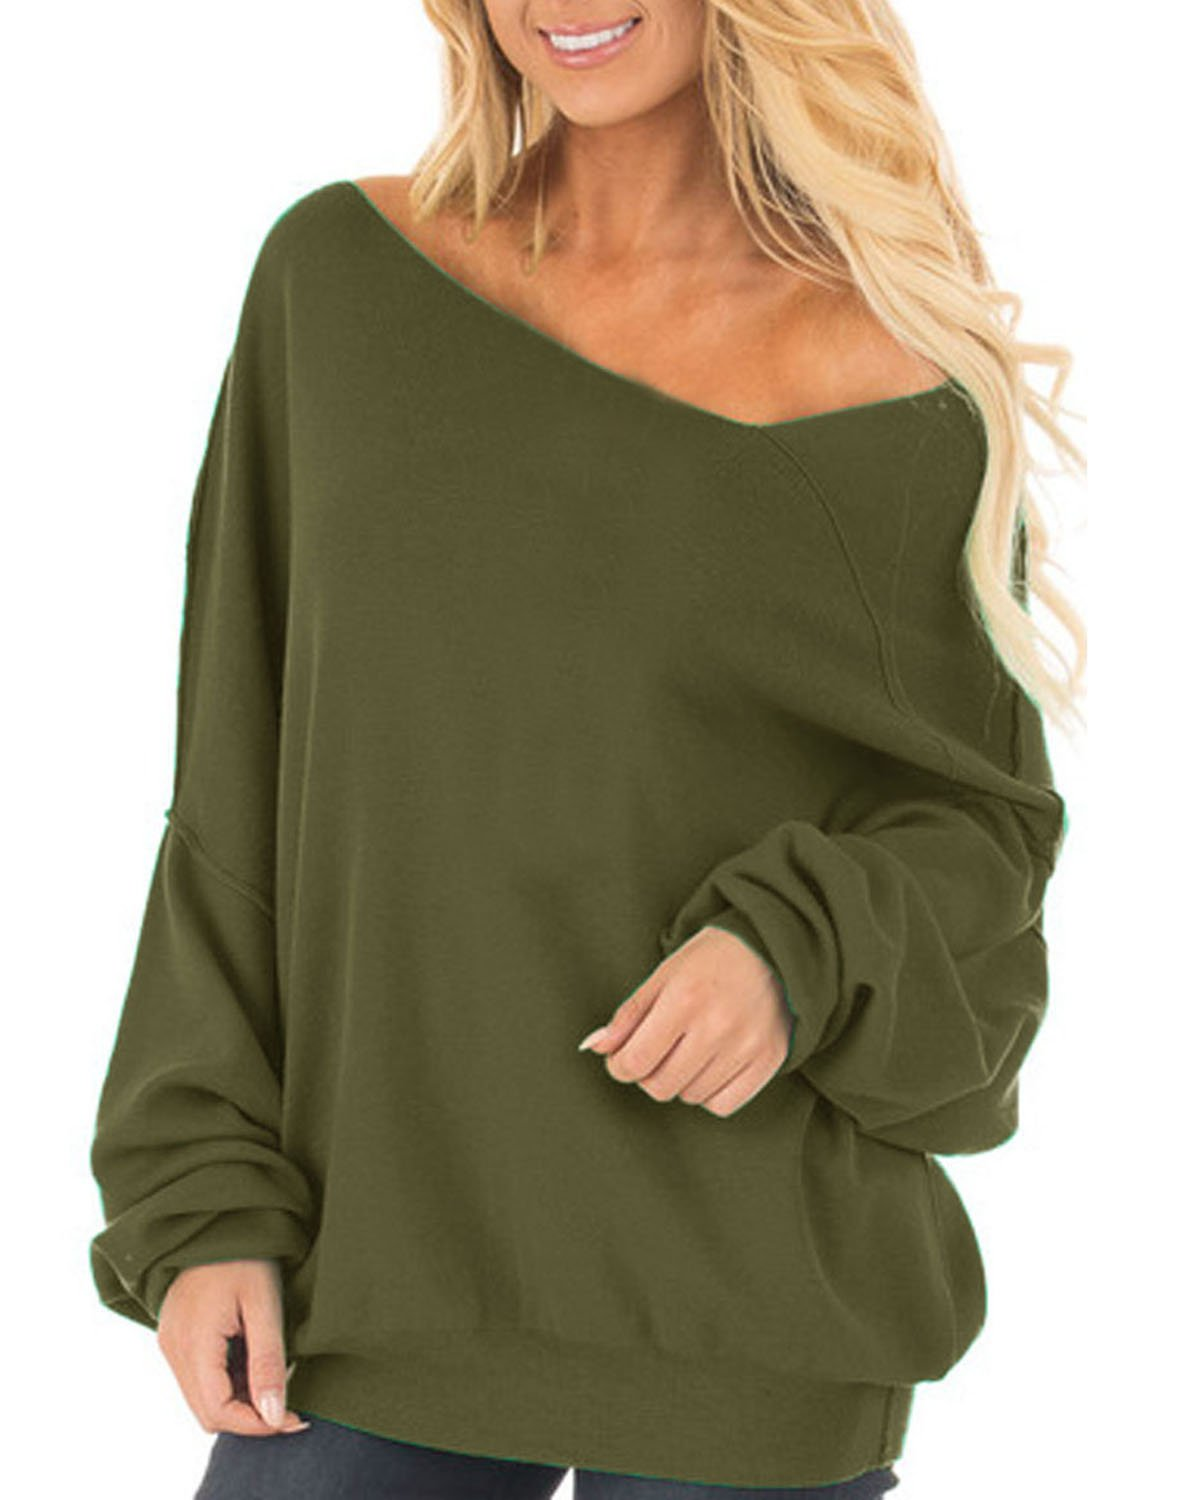 Auxo Womens Off The Shoulder Tops Baggy Shirt Long Sleeve Blouse Oversized Sweater Jumper Pullover Green US 16/Asian 2XL